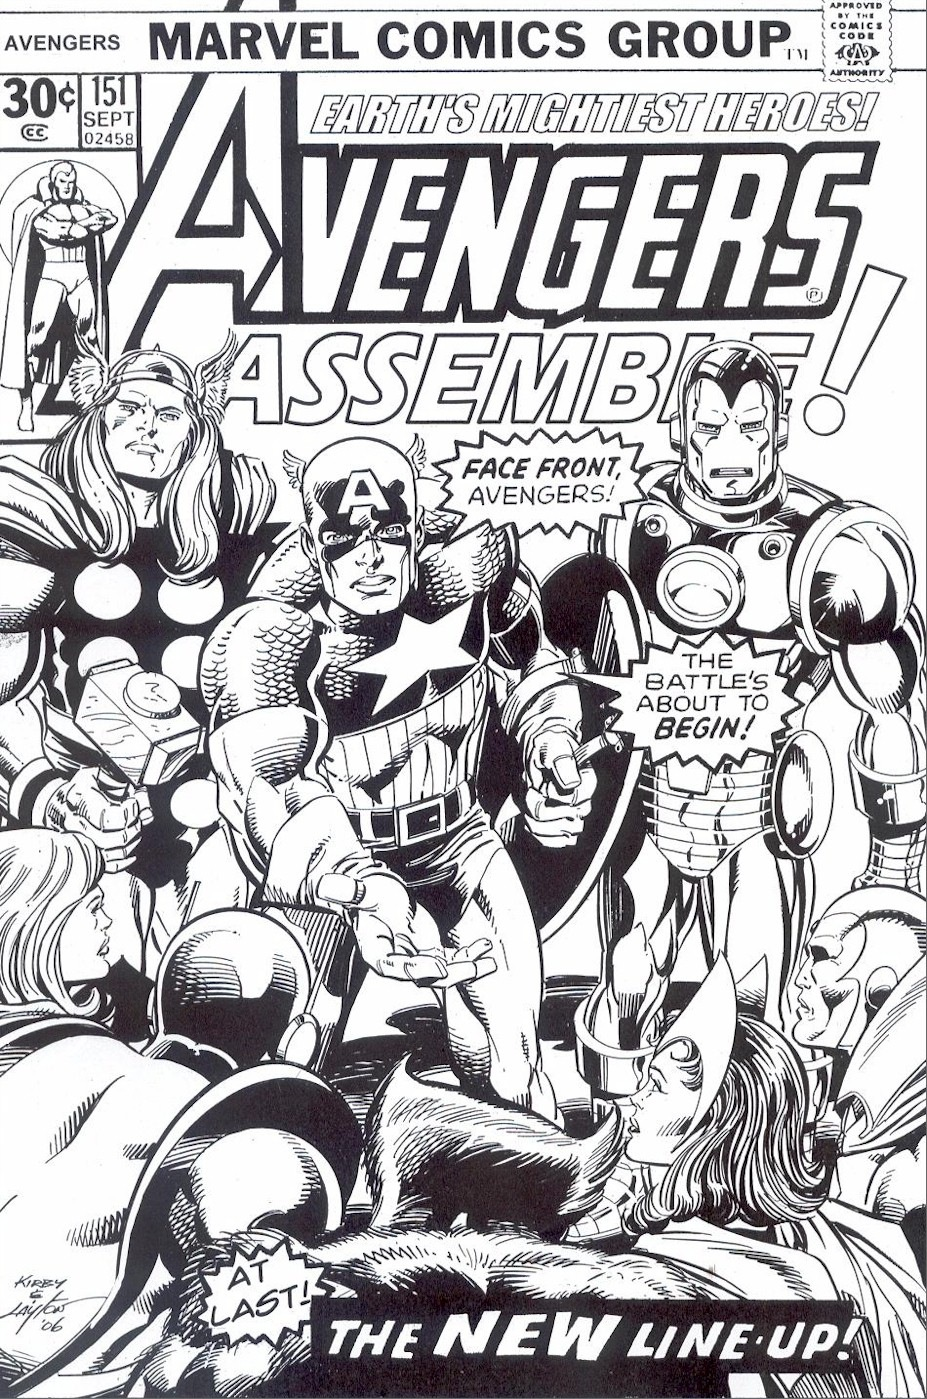 free avengers comic coloring page - Comic Coloring Pages